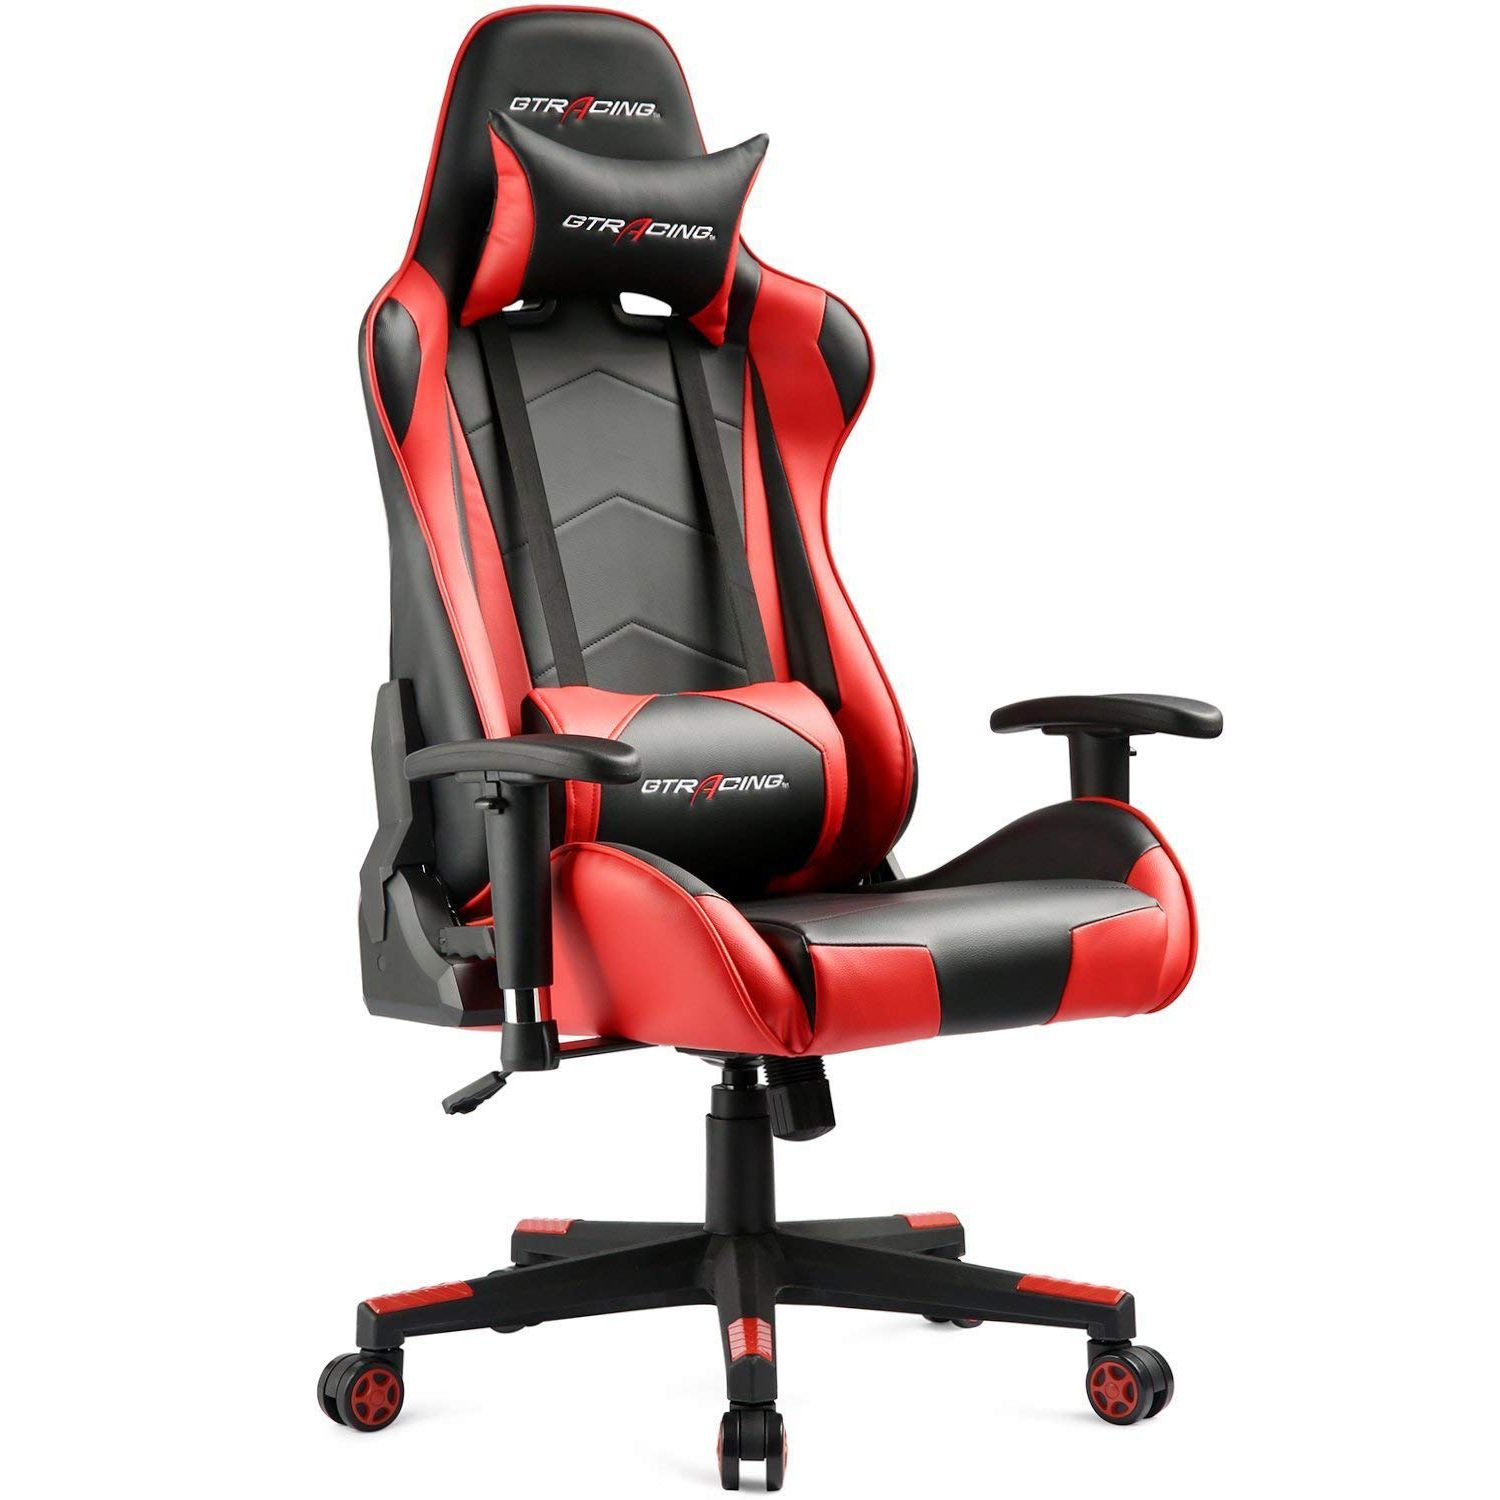 Top 10 Best Gaming Chairs in 2020 Reviews Sport chair